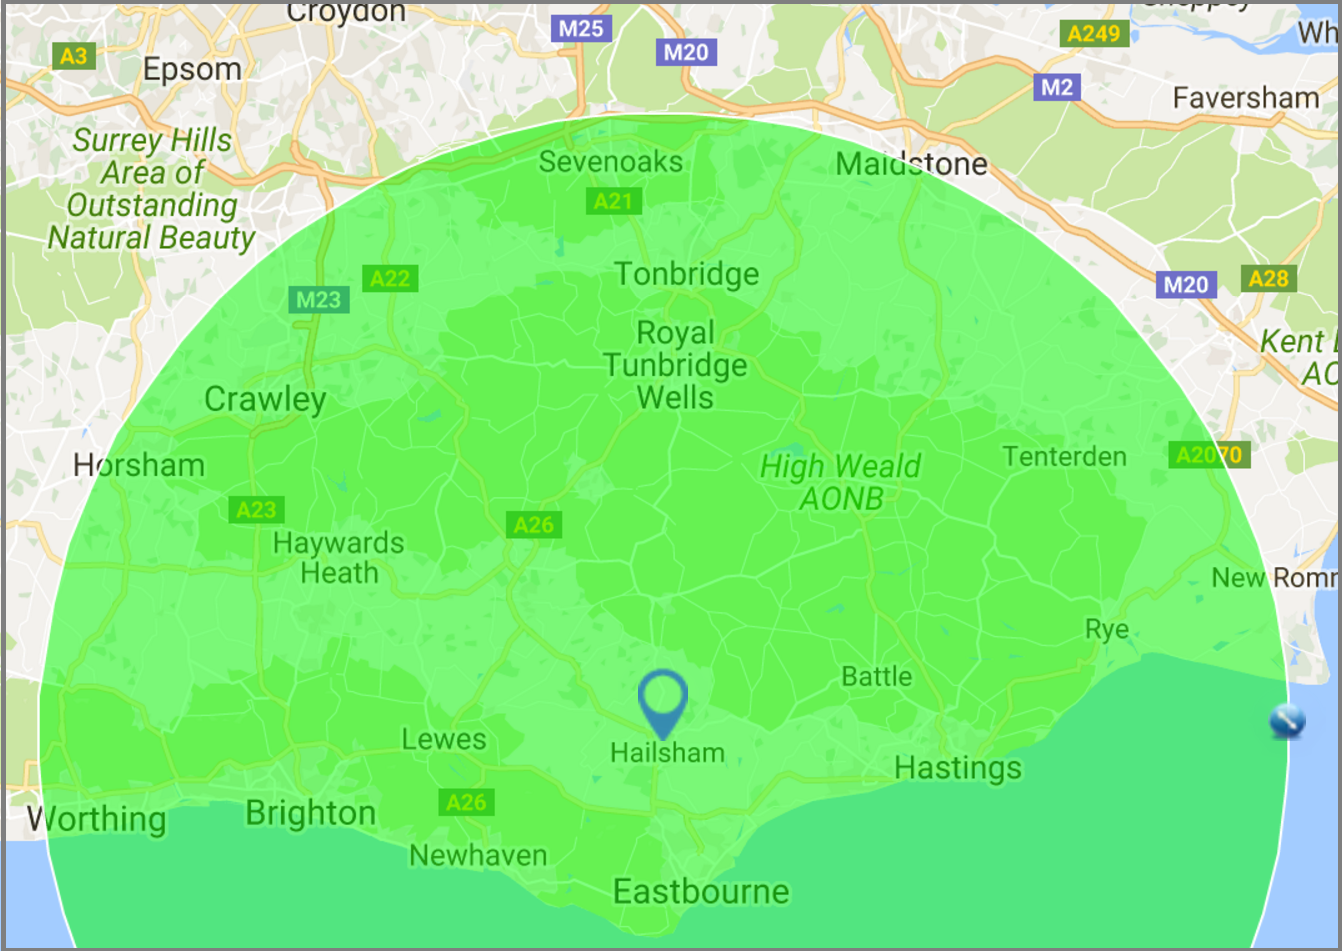 30 mile radius from Hailsham for your driveways, groundwork, drainage or commercial project